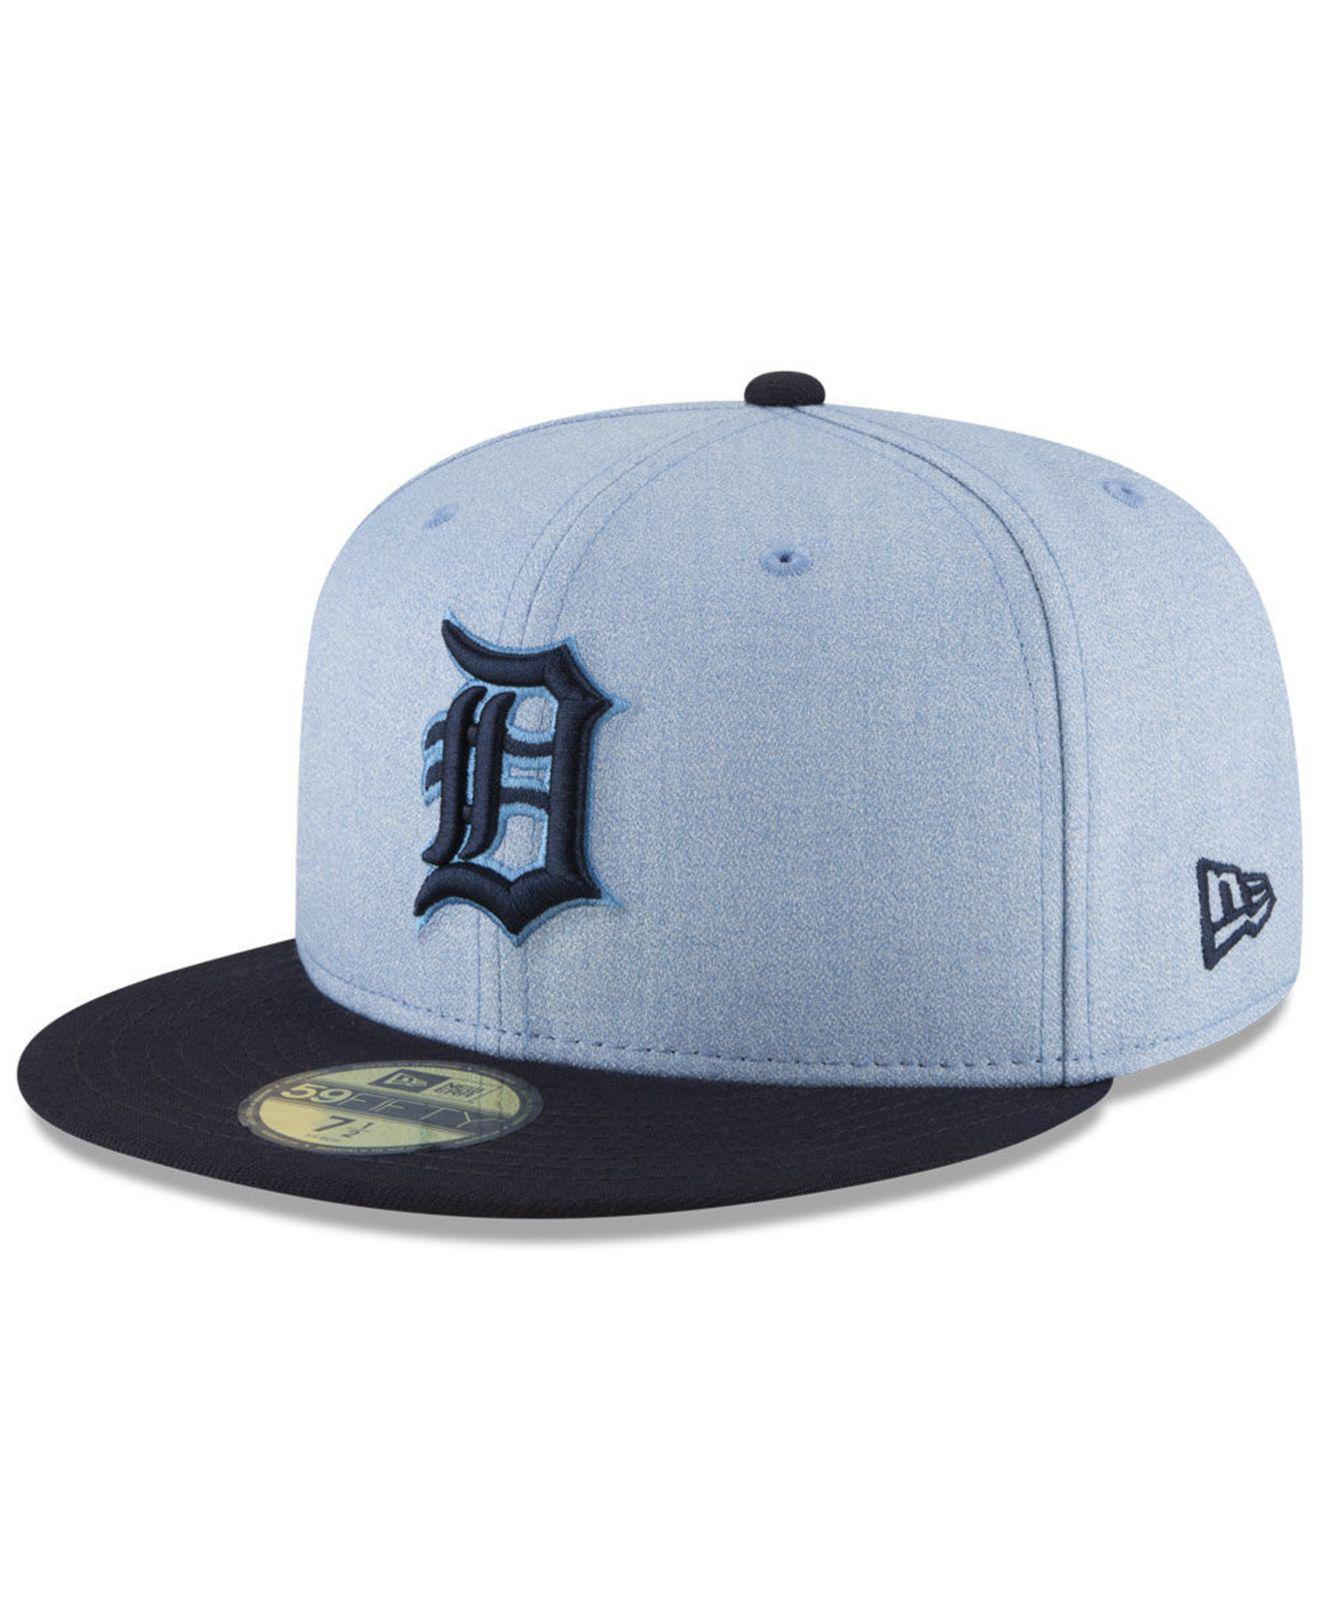 2b2c62e0e64 KTZ - Blue Detroit Tigers Father s Day 59fifty Fitted Cap 2018 for Men -  Lyst. View fullscreen